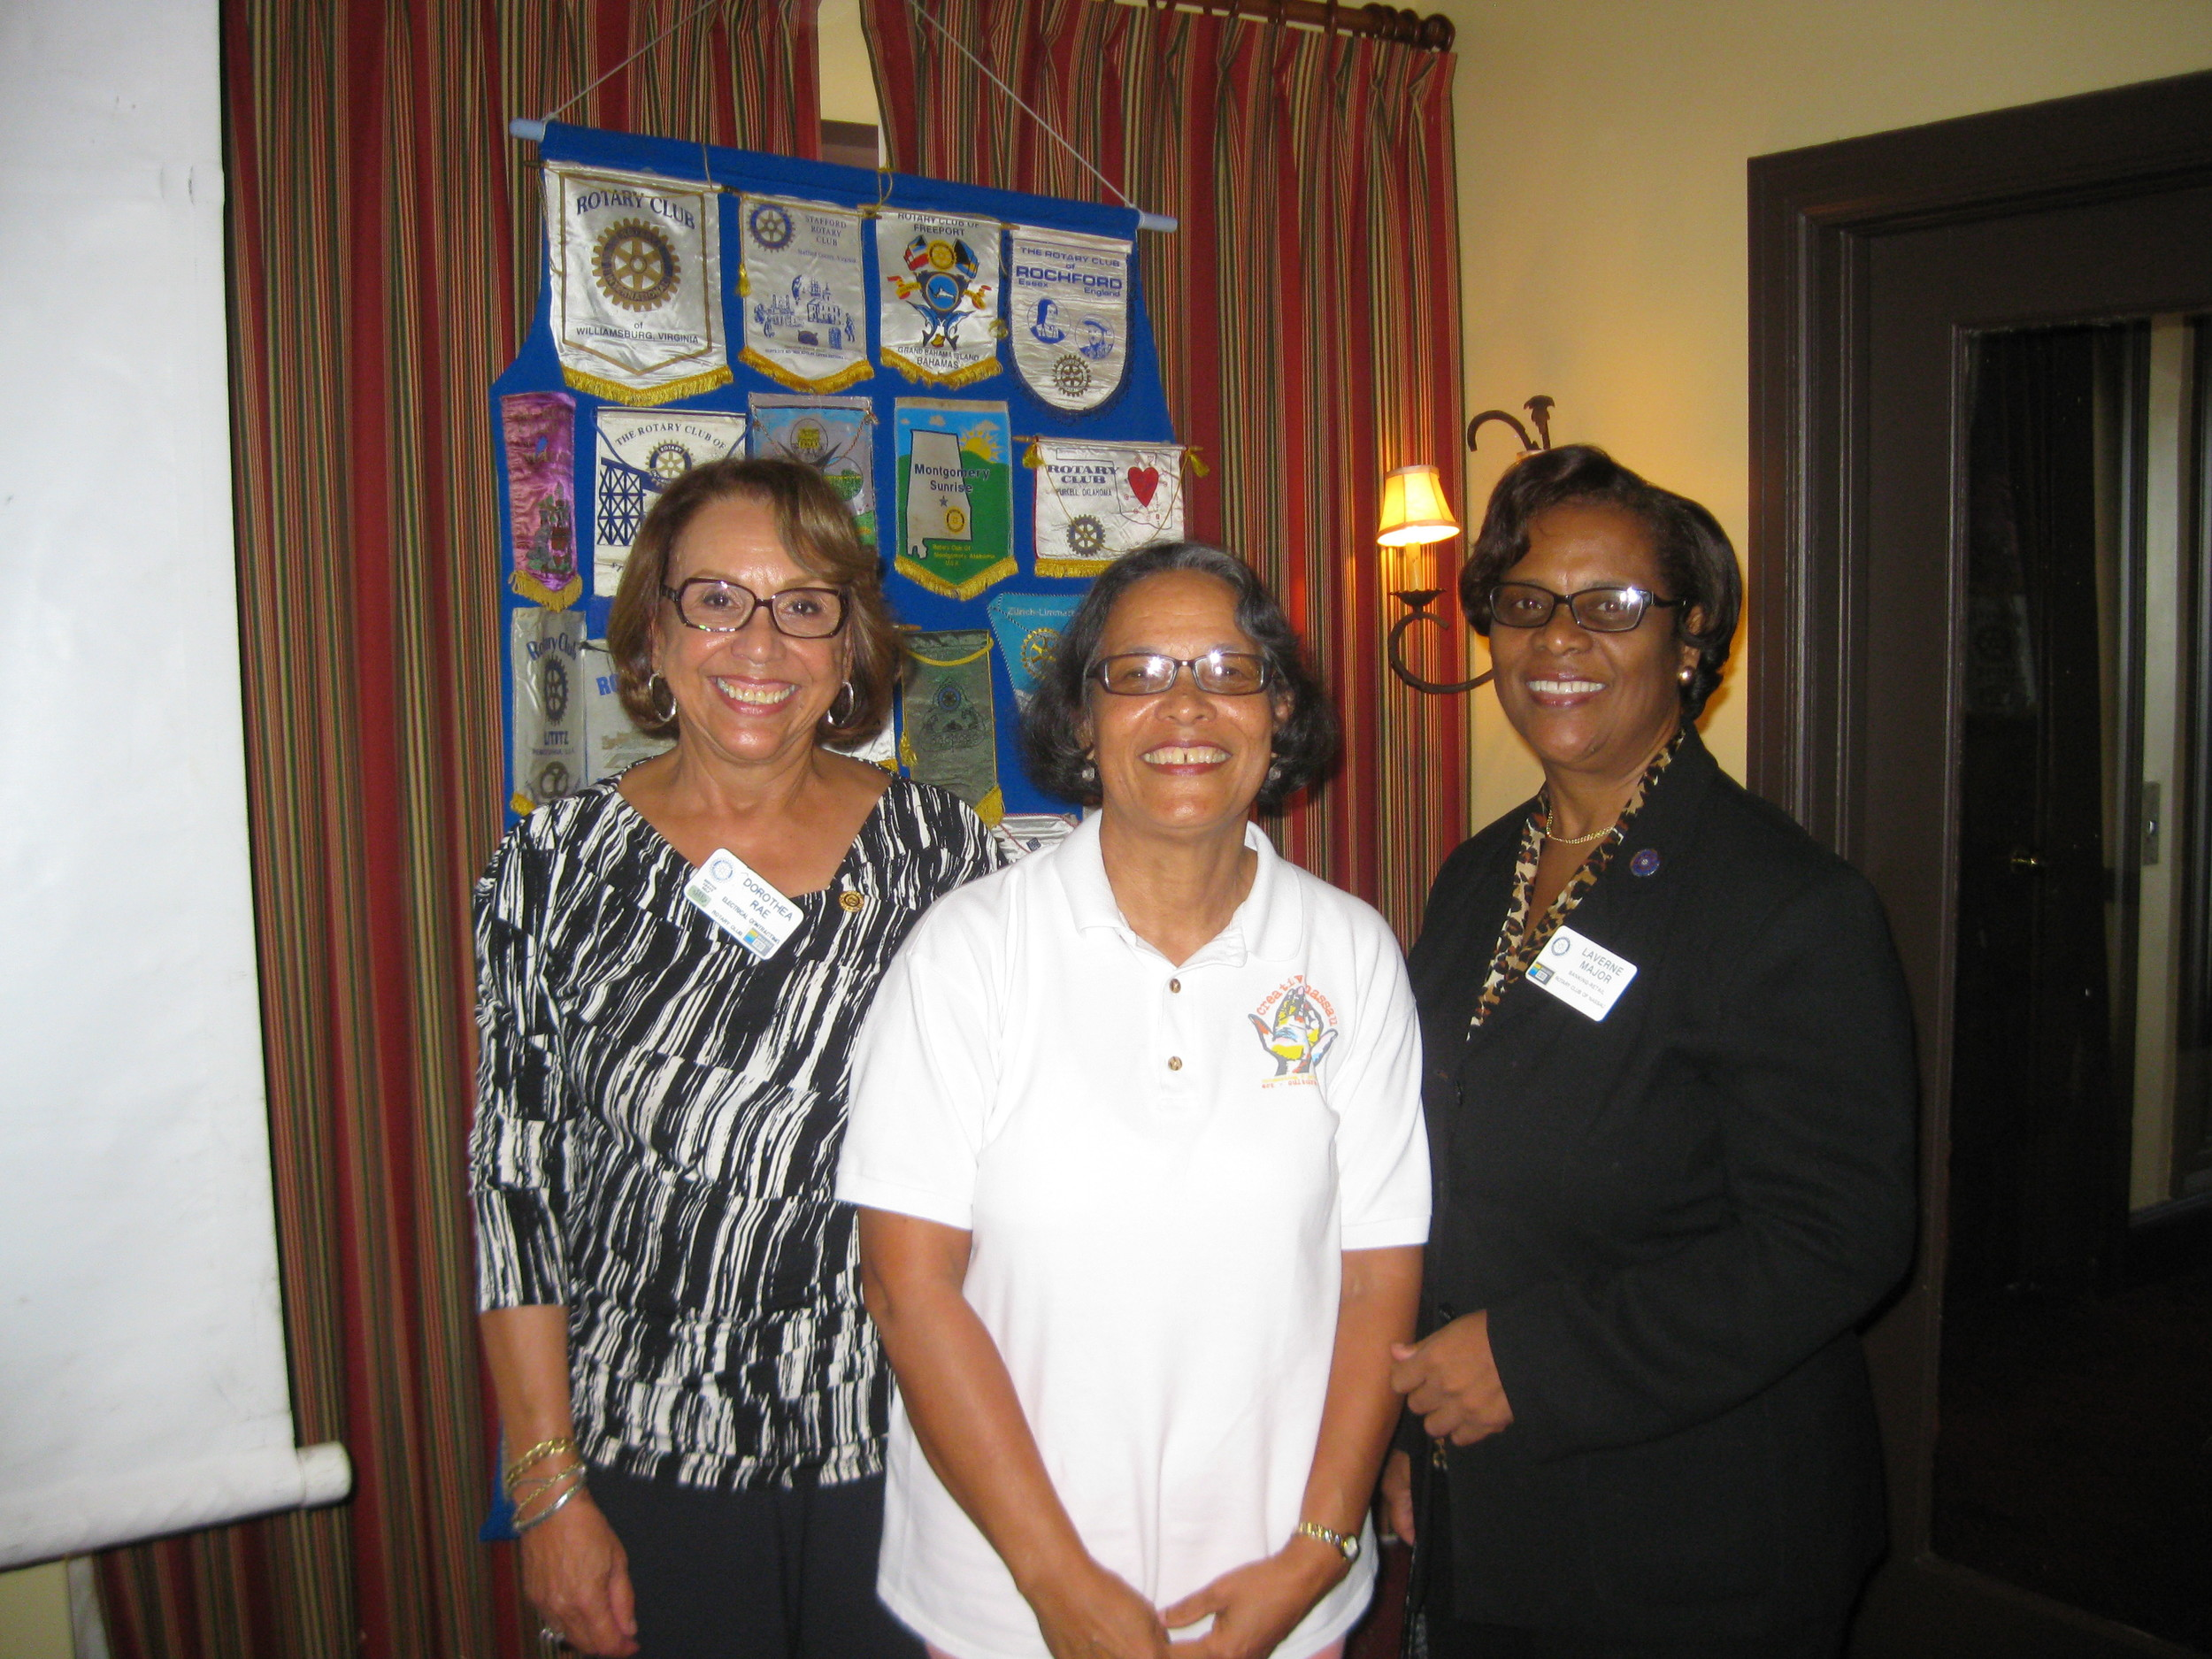 Pam Burnside (centre) with incoming Rotary President Dorothea Rae (left) and Rotarian Laverne at the presentation